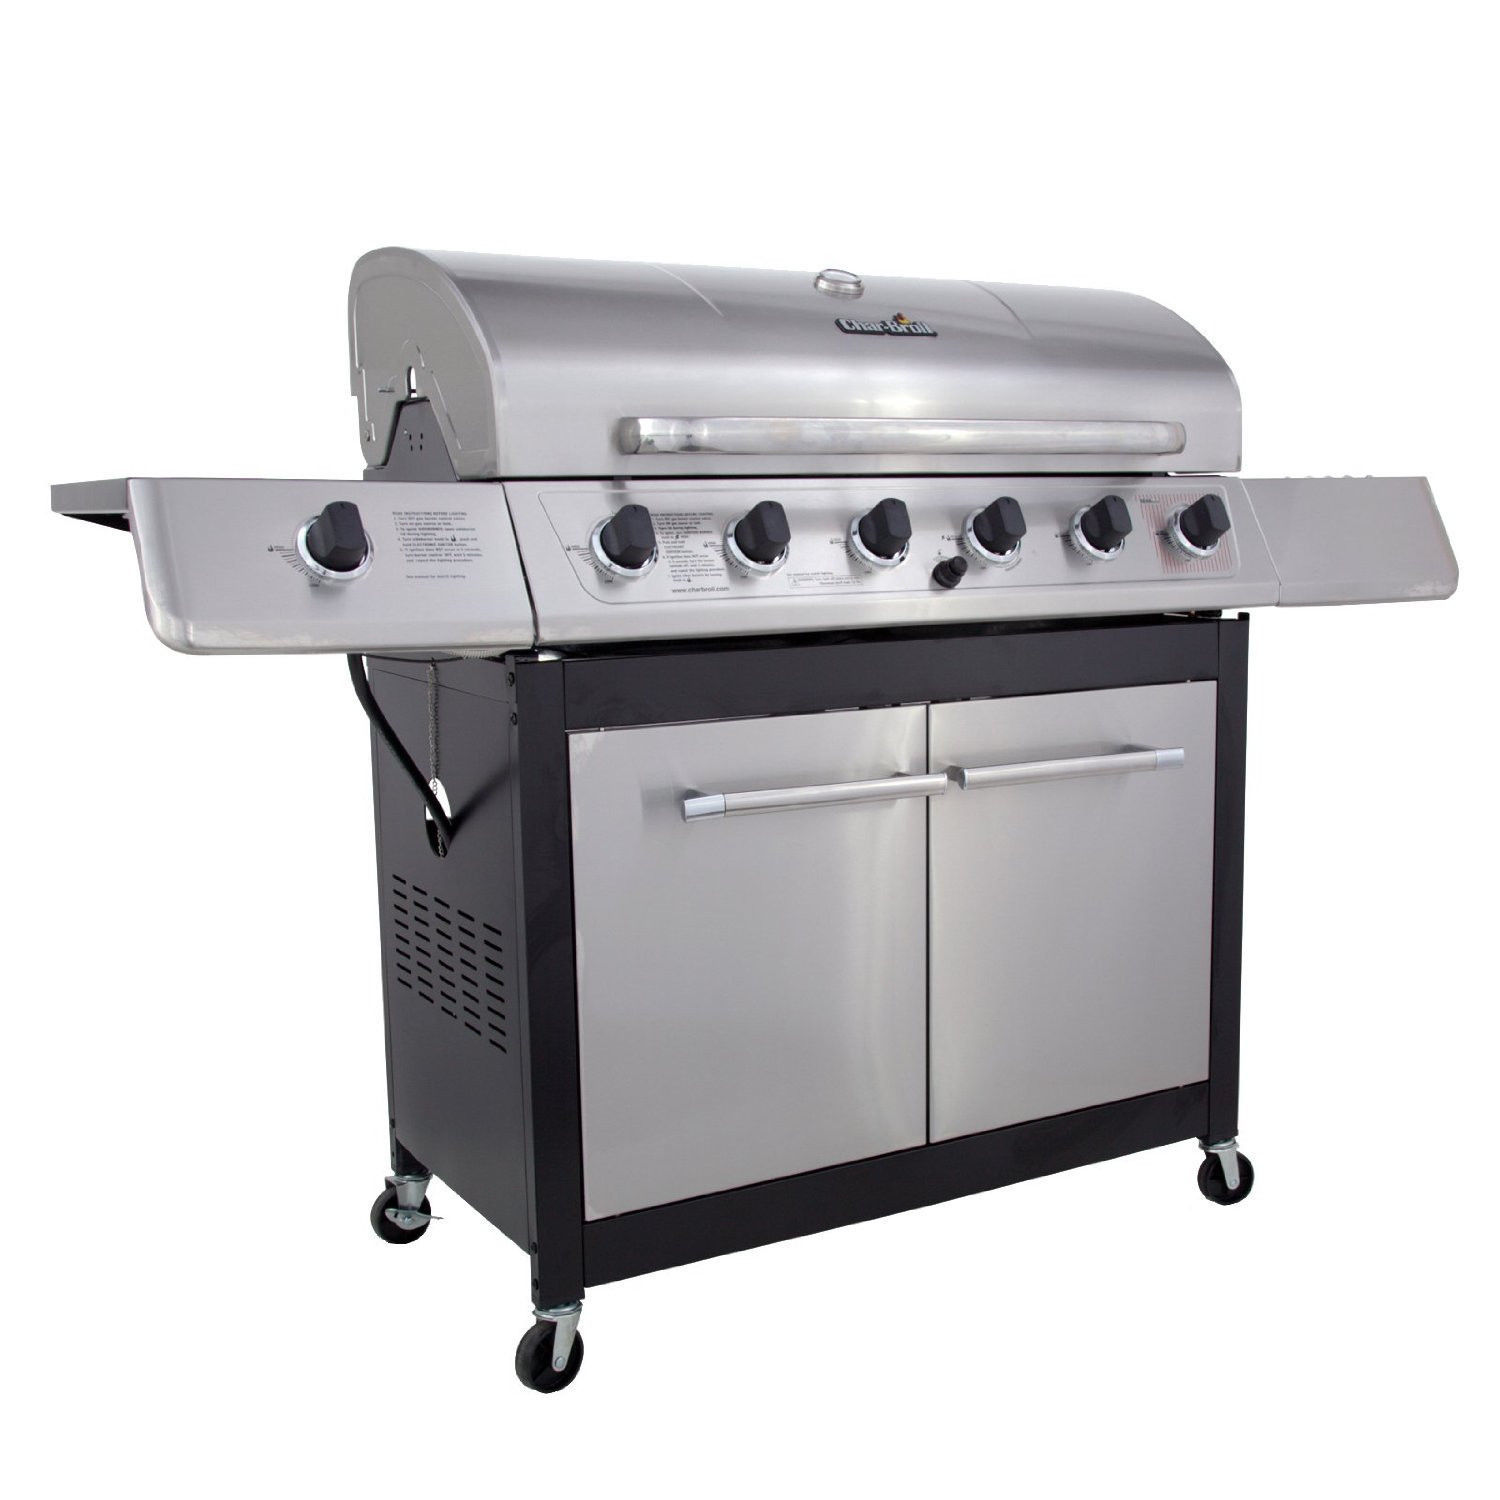 Stainless CharBroil 6 Burner Gas Grill Side Burner BBQ Food Party Outdoor Patio